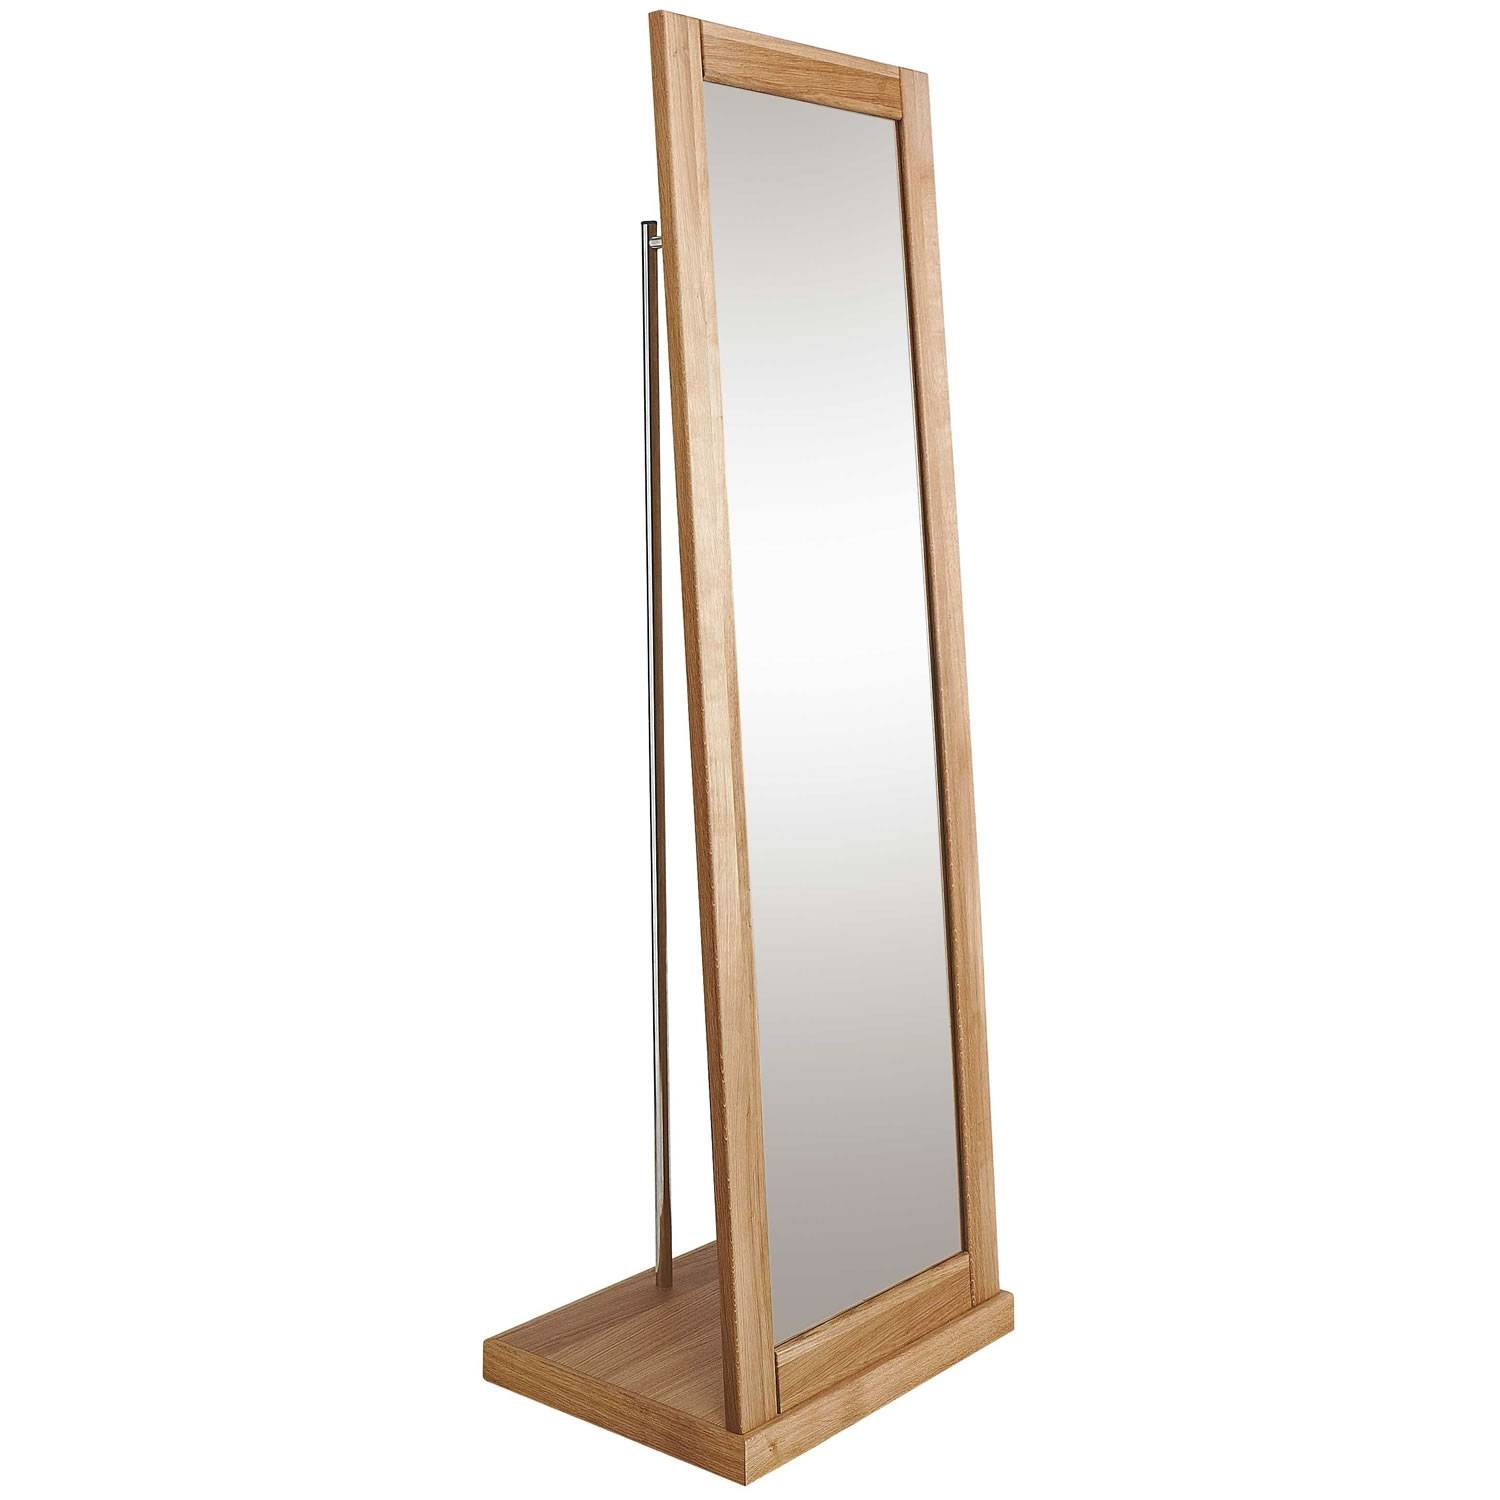 Cheval Mirror French – Decorative Cheval Mirrors For Your Home Pertaining To Modern Cheval Mirrors (View 11 of 25)